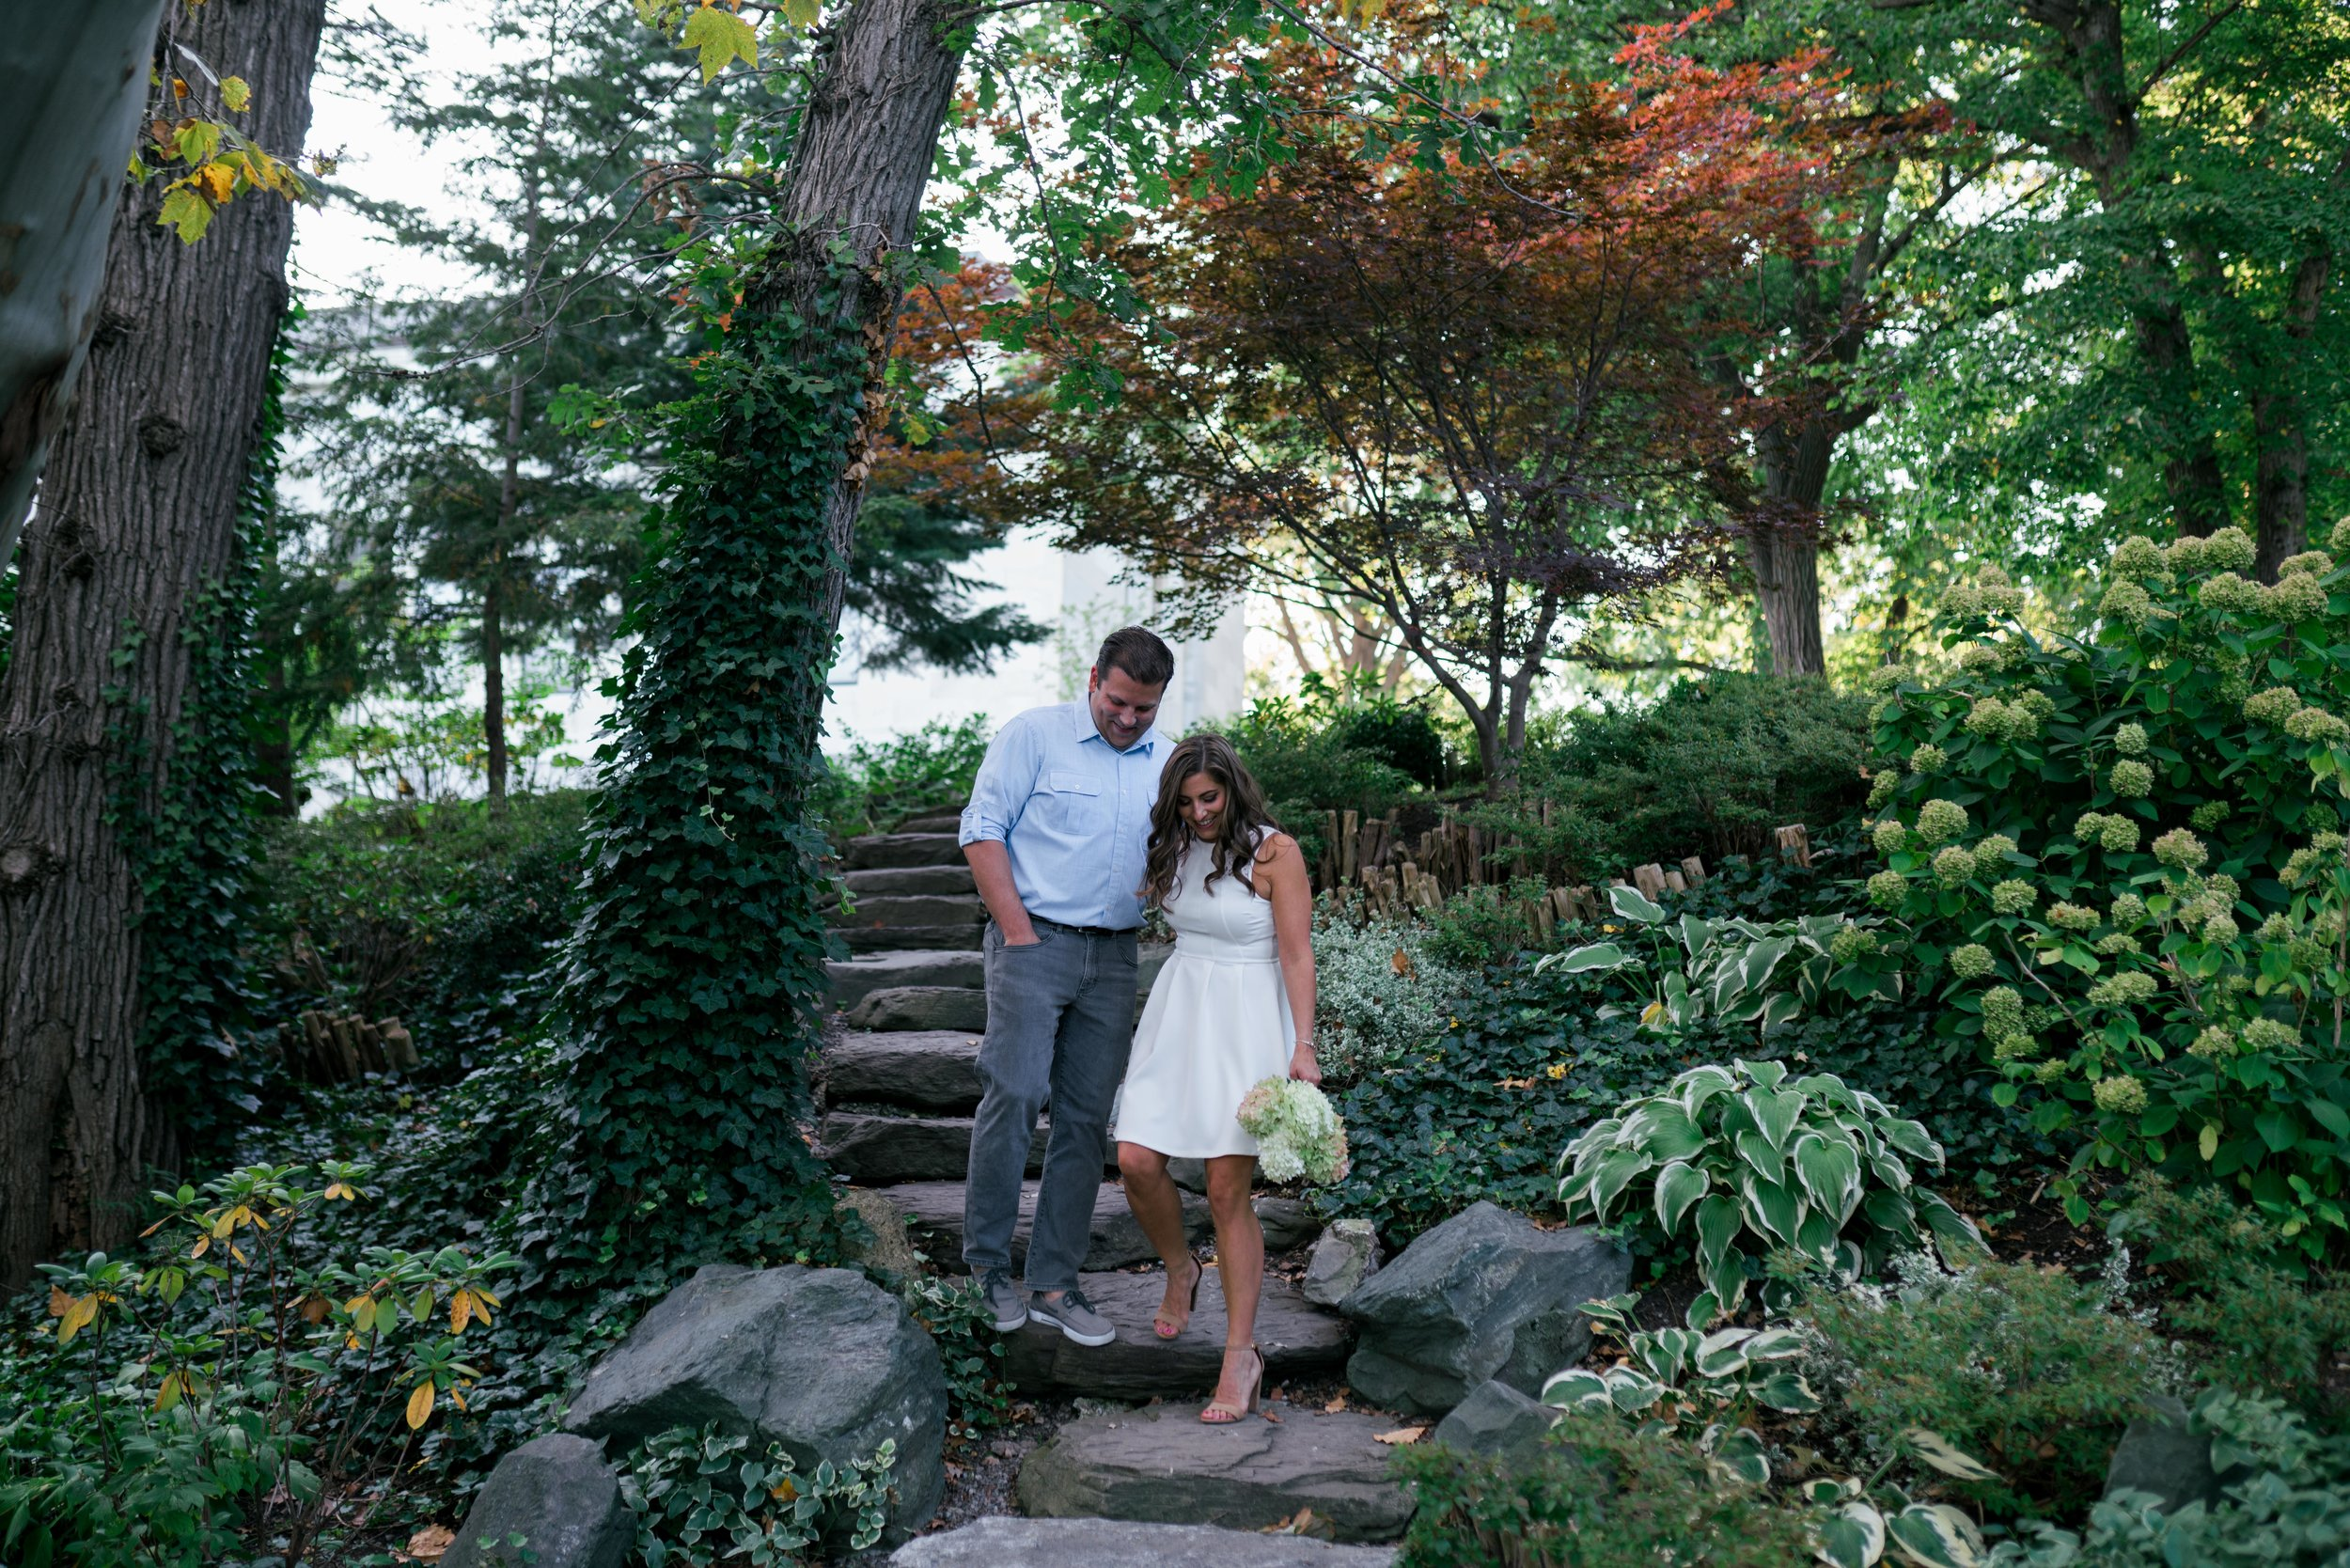 Nancy and David Engagement Photography by Stefan Ludwig in Buffalo NY-25.jpg